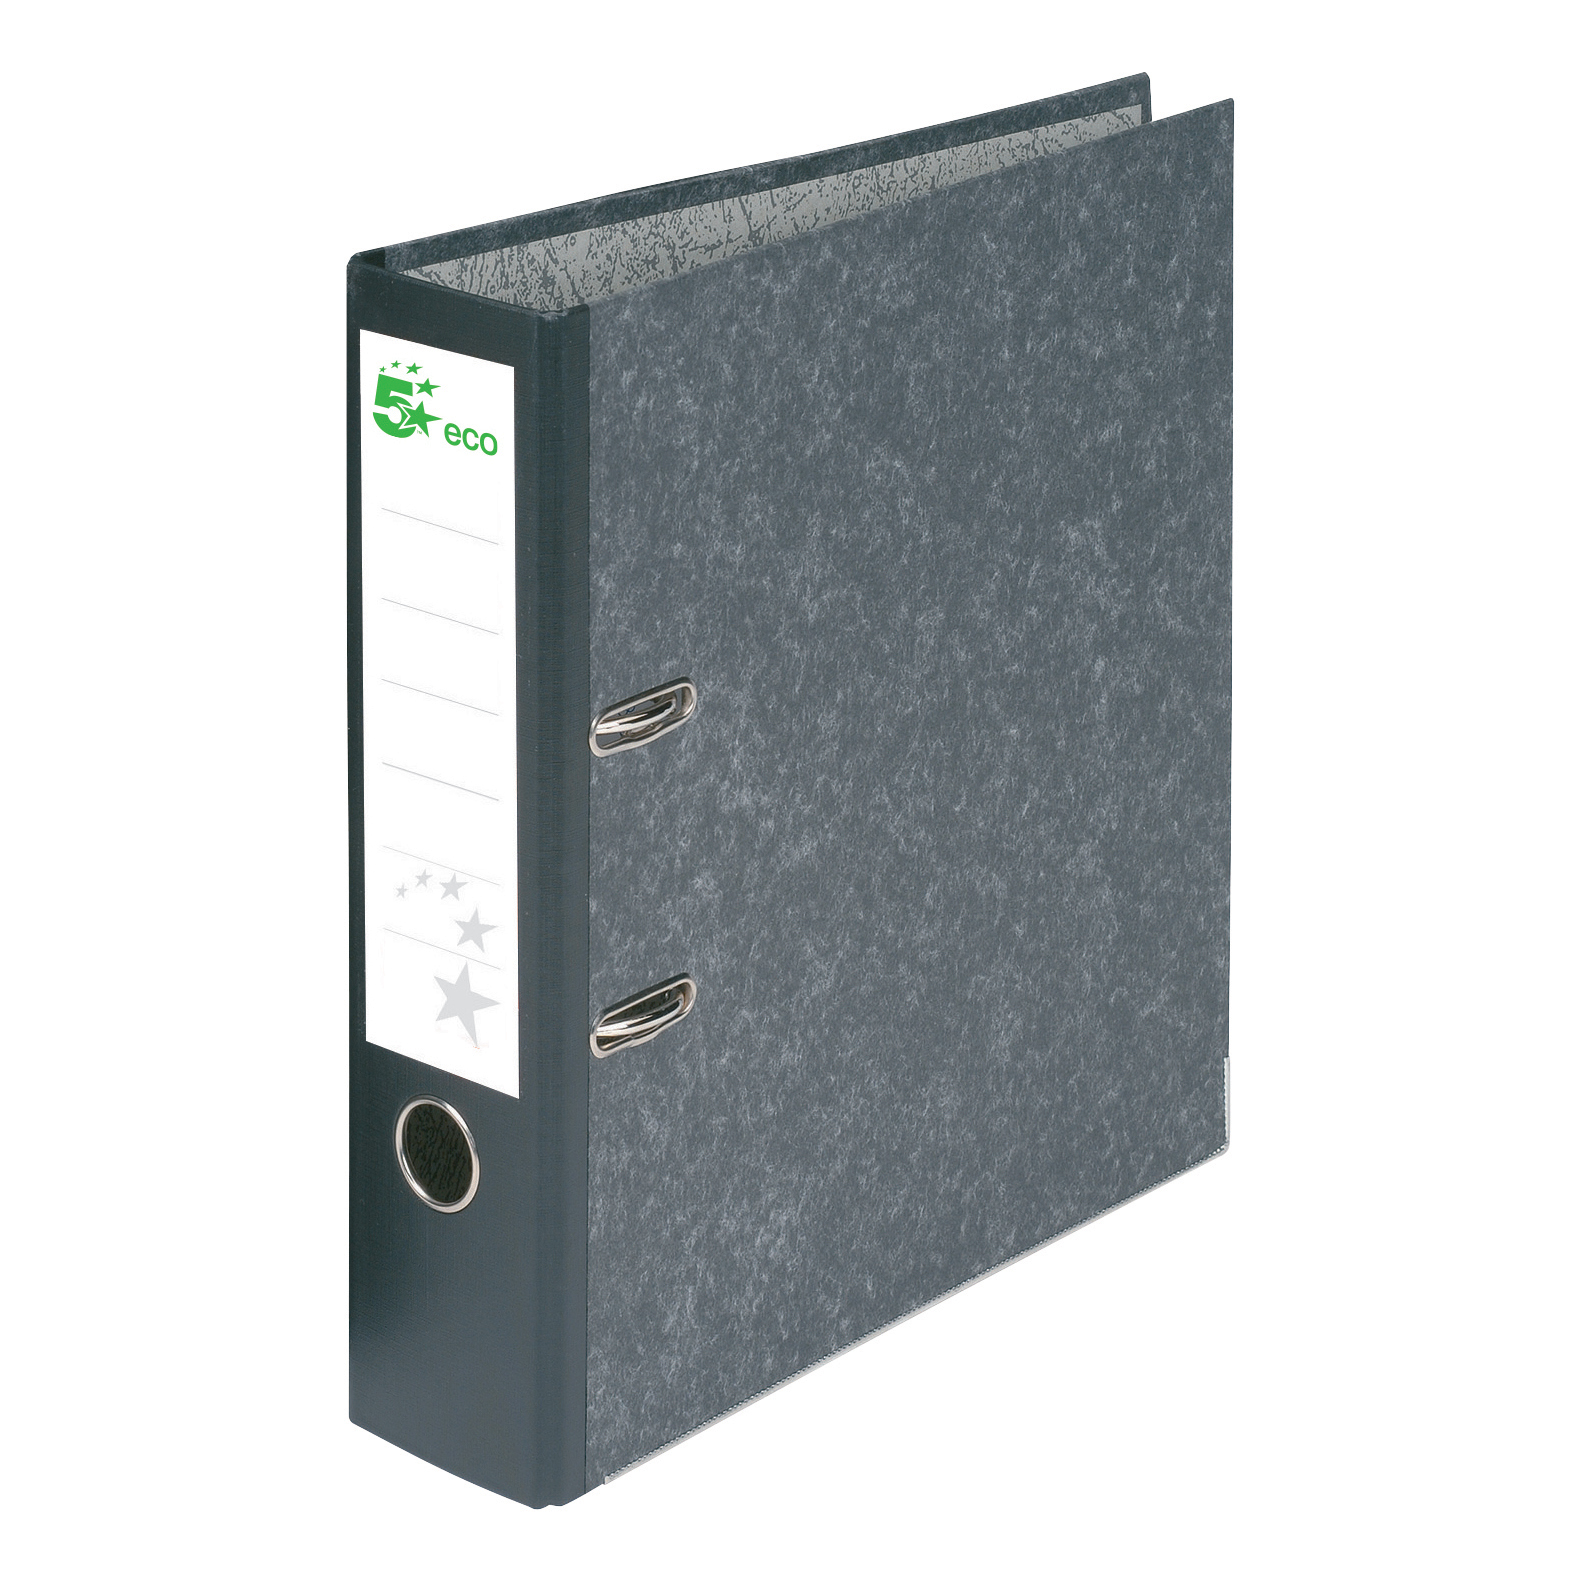 Lever Arch Files 5 Star Eco Lever Arch File A4 Recycled Cloud